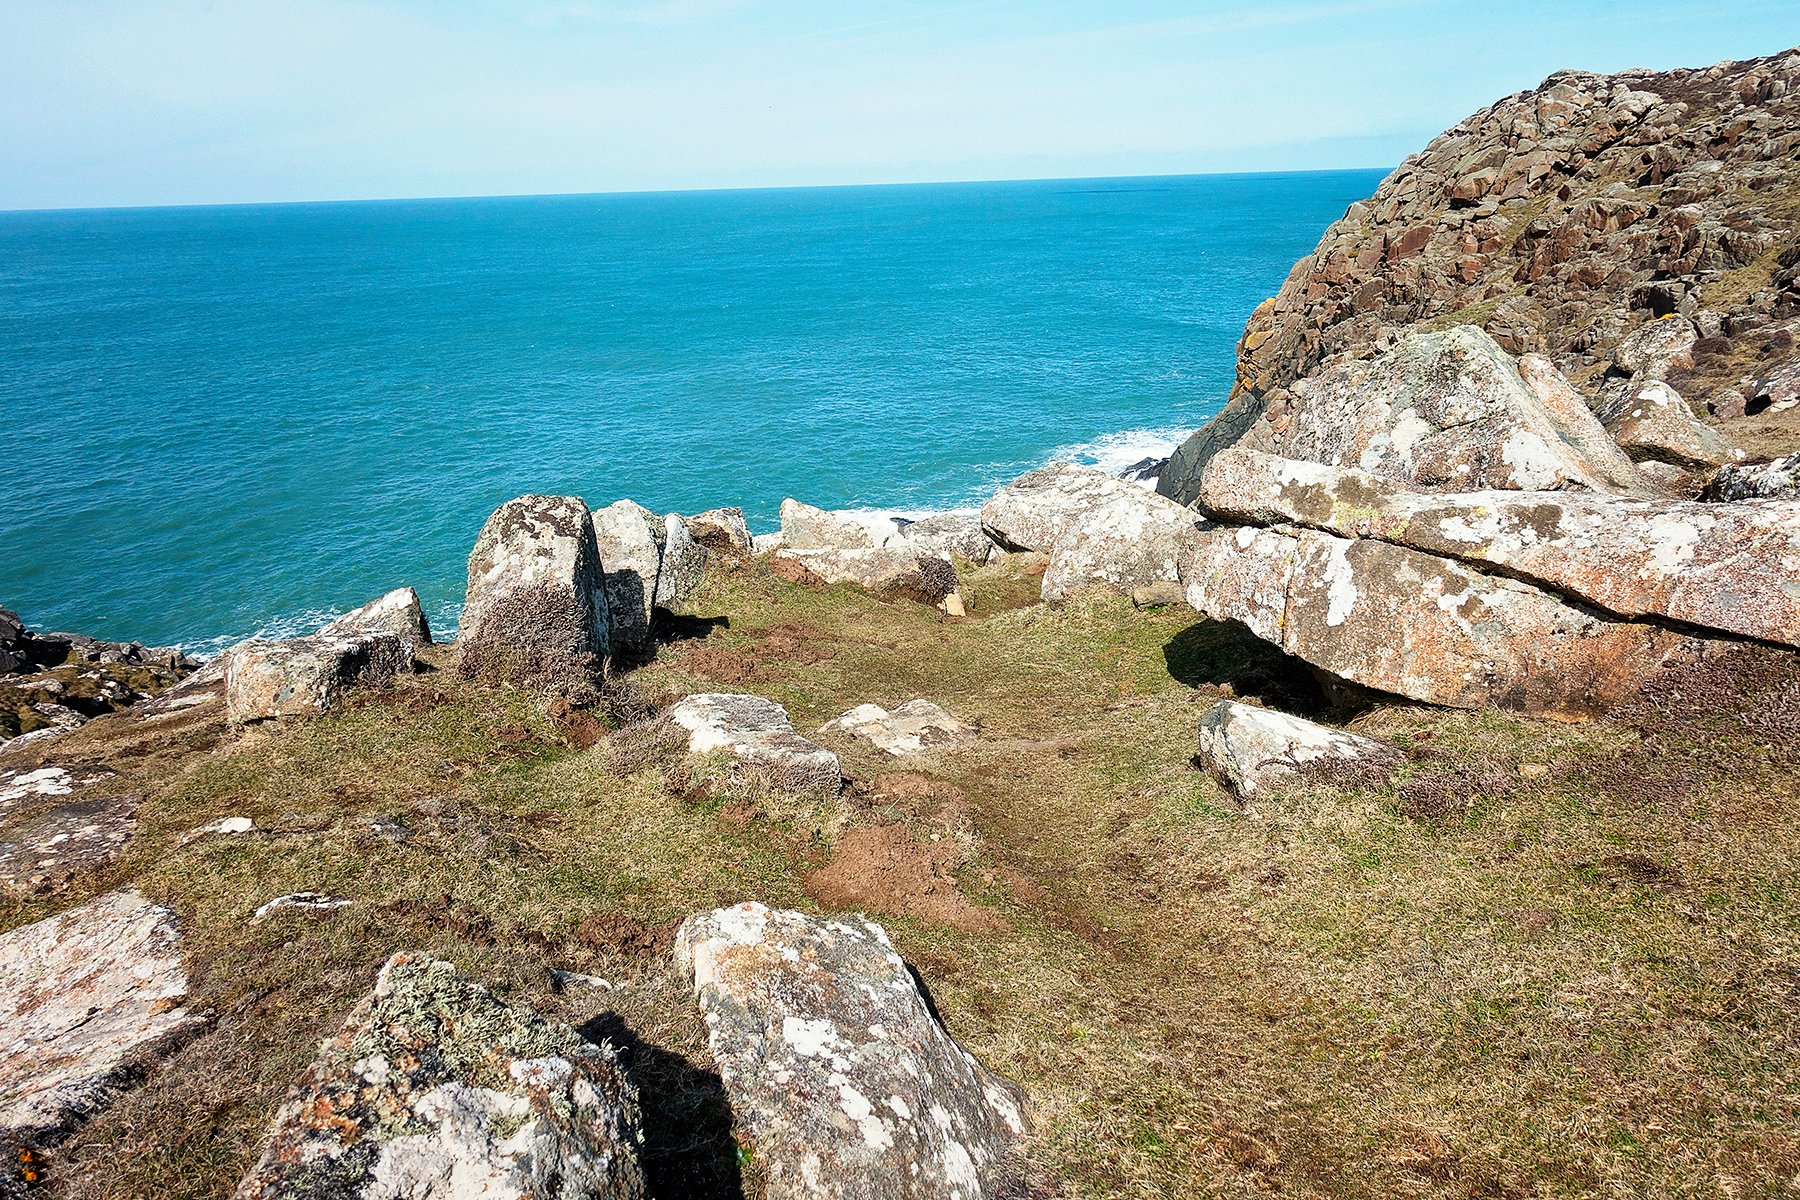 St. David's Coastal walk in Pembrokeshire